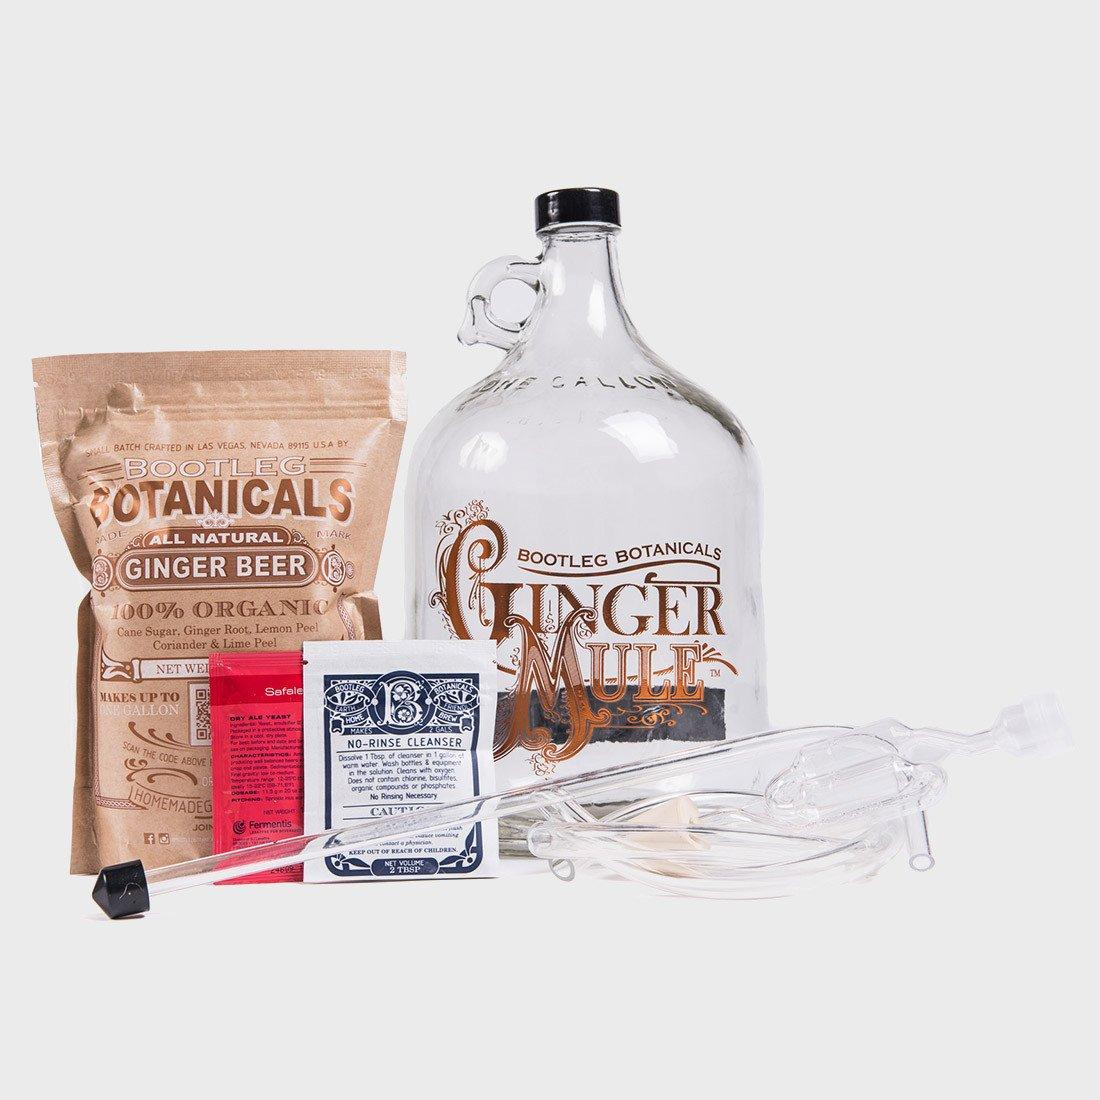 Bootleg Botanicals DIY Ginger Beer Making Kit